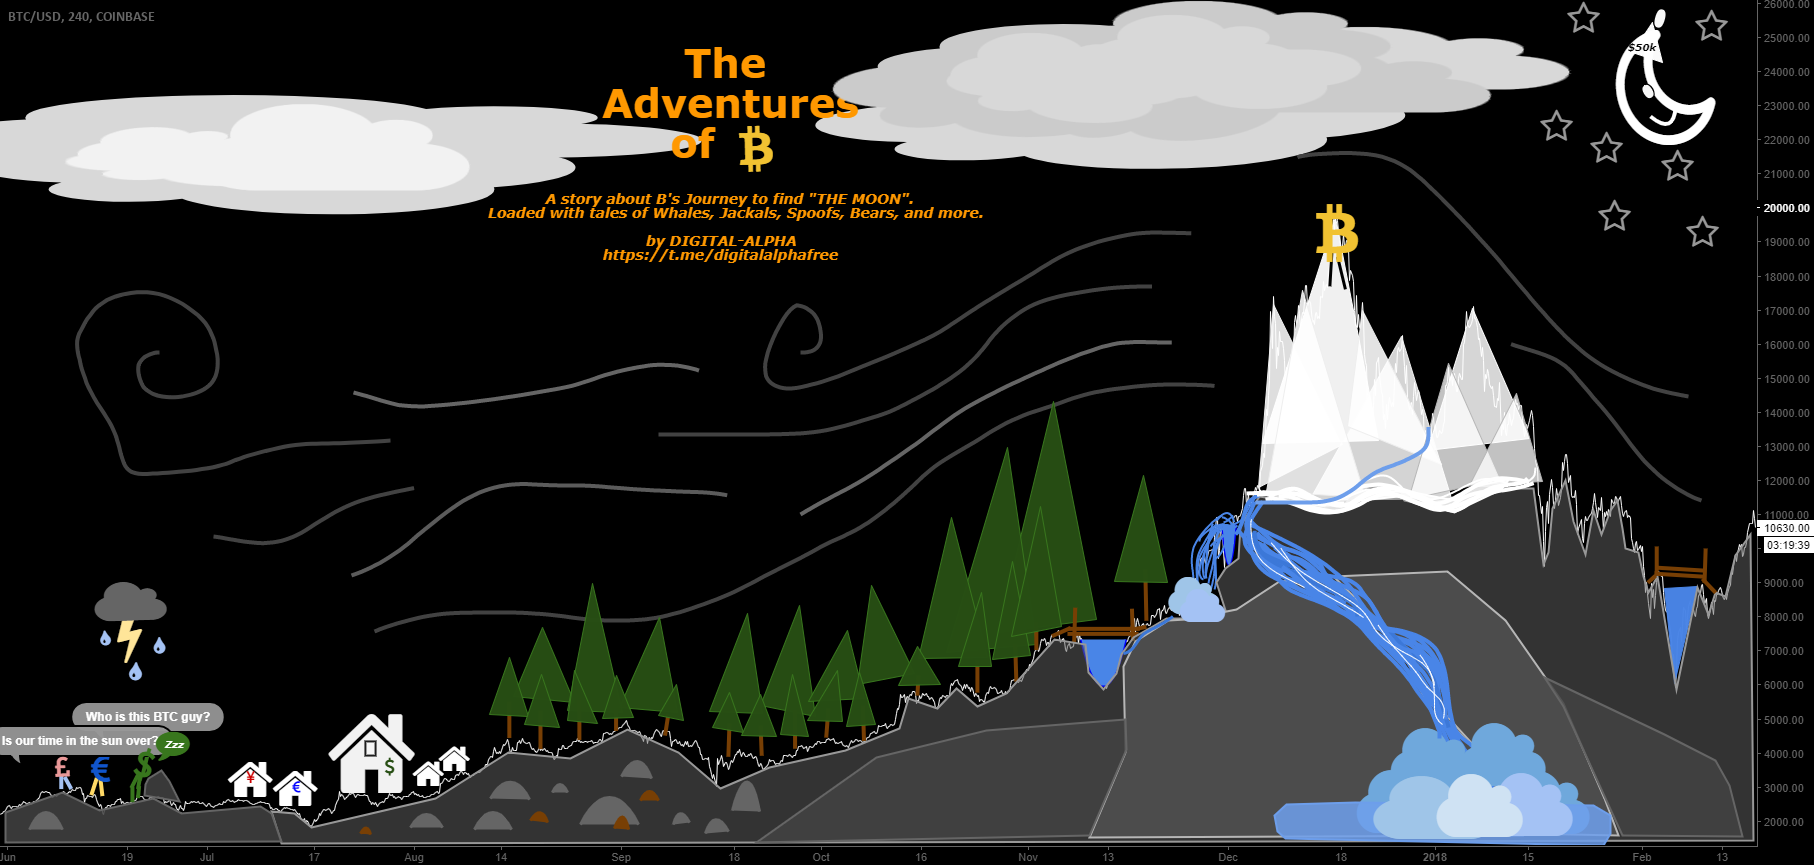 DIGITAL ALPHA PRESENTS: THE ADVENTURES OF B